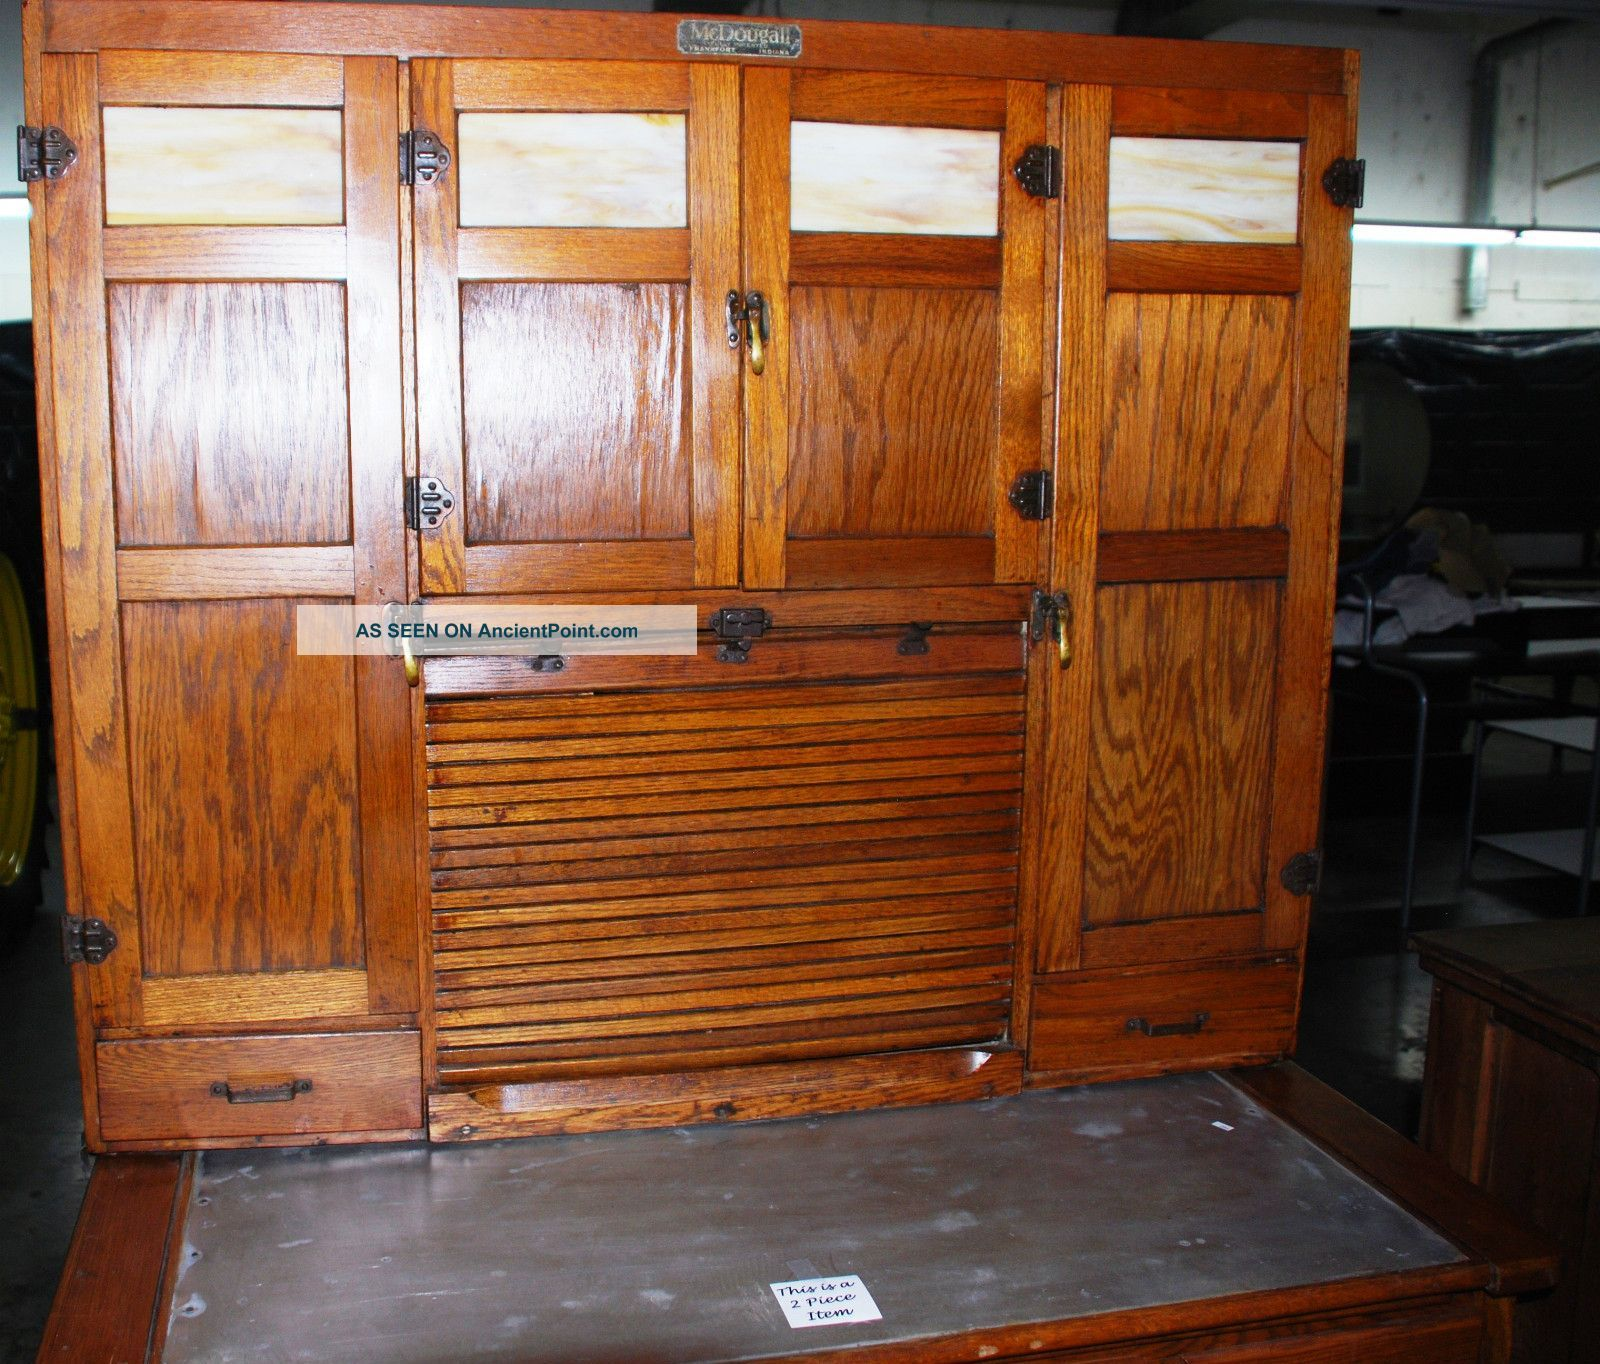 Mcdougall Kitchen Cabinet   Vintage   Hoosier   Style Photos And  Information In AncientPoint